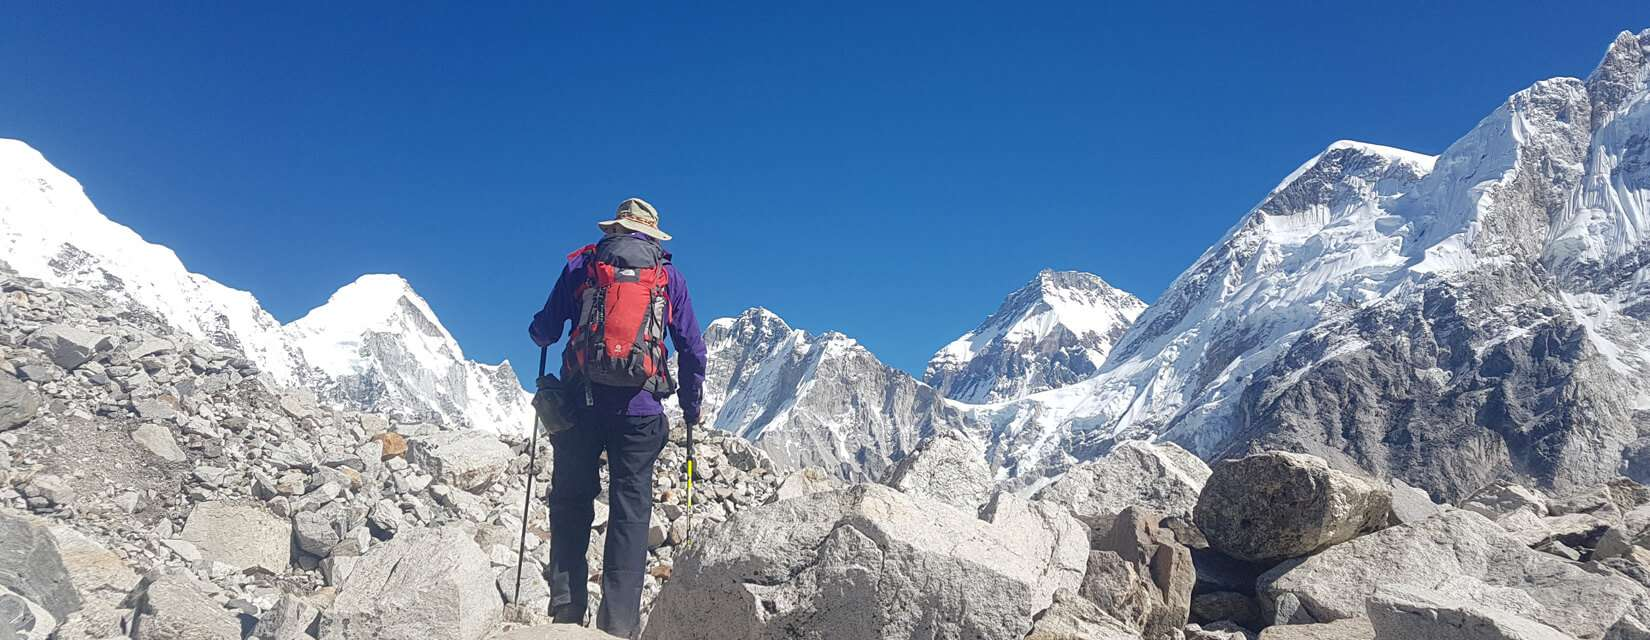 Trek to Everest Region